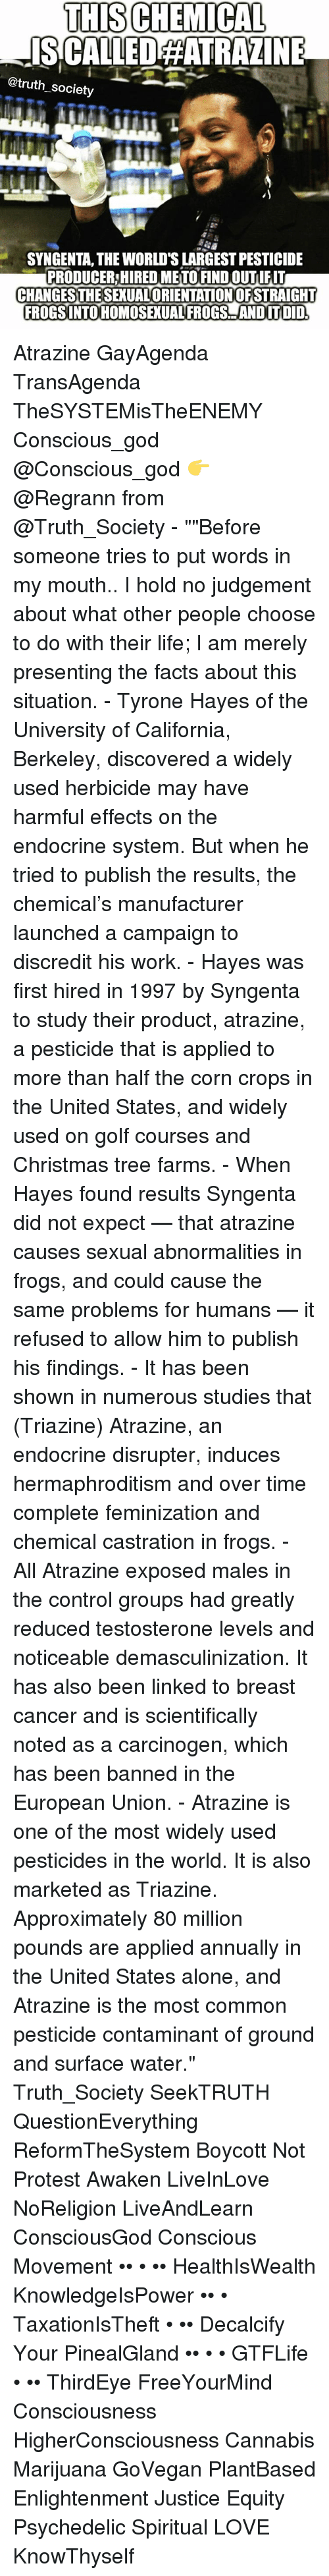 Atrazine Frogs Exposed